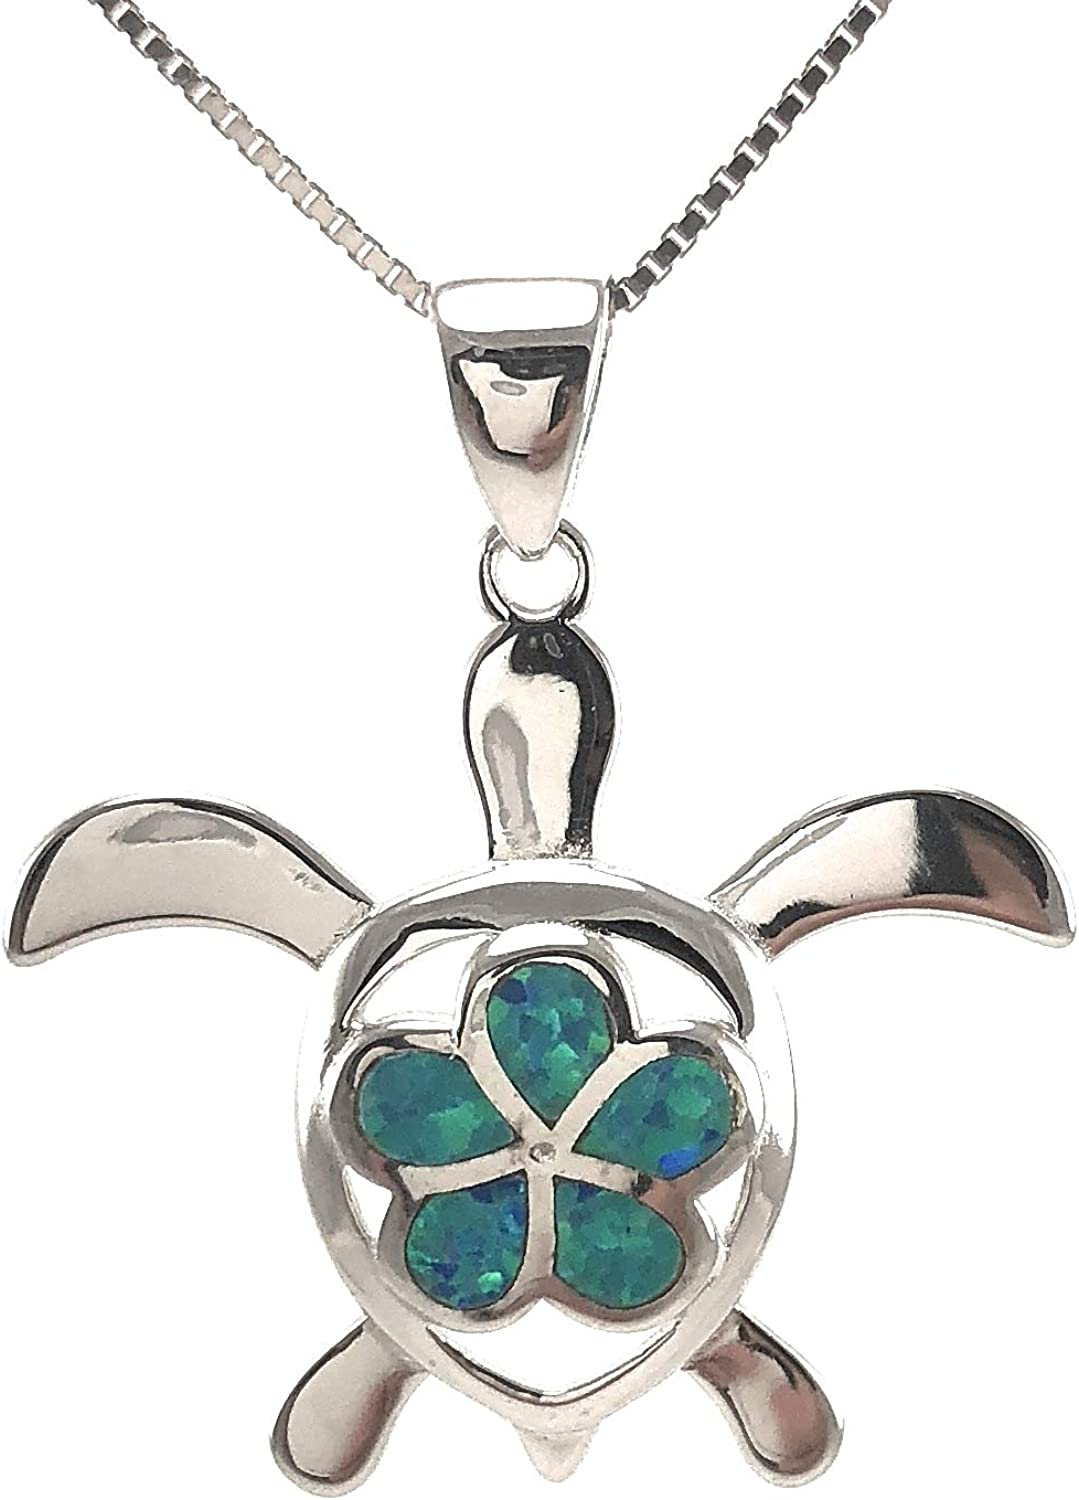 A6160 Sterling Silver Hawaiian Turtle Pendant Necklace with Plumeria Synthetic Blue Opal with 18 Silver Chain